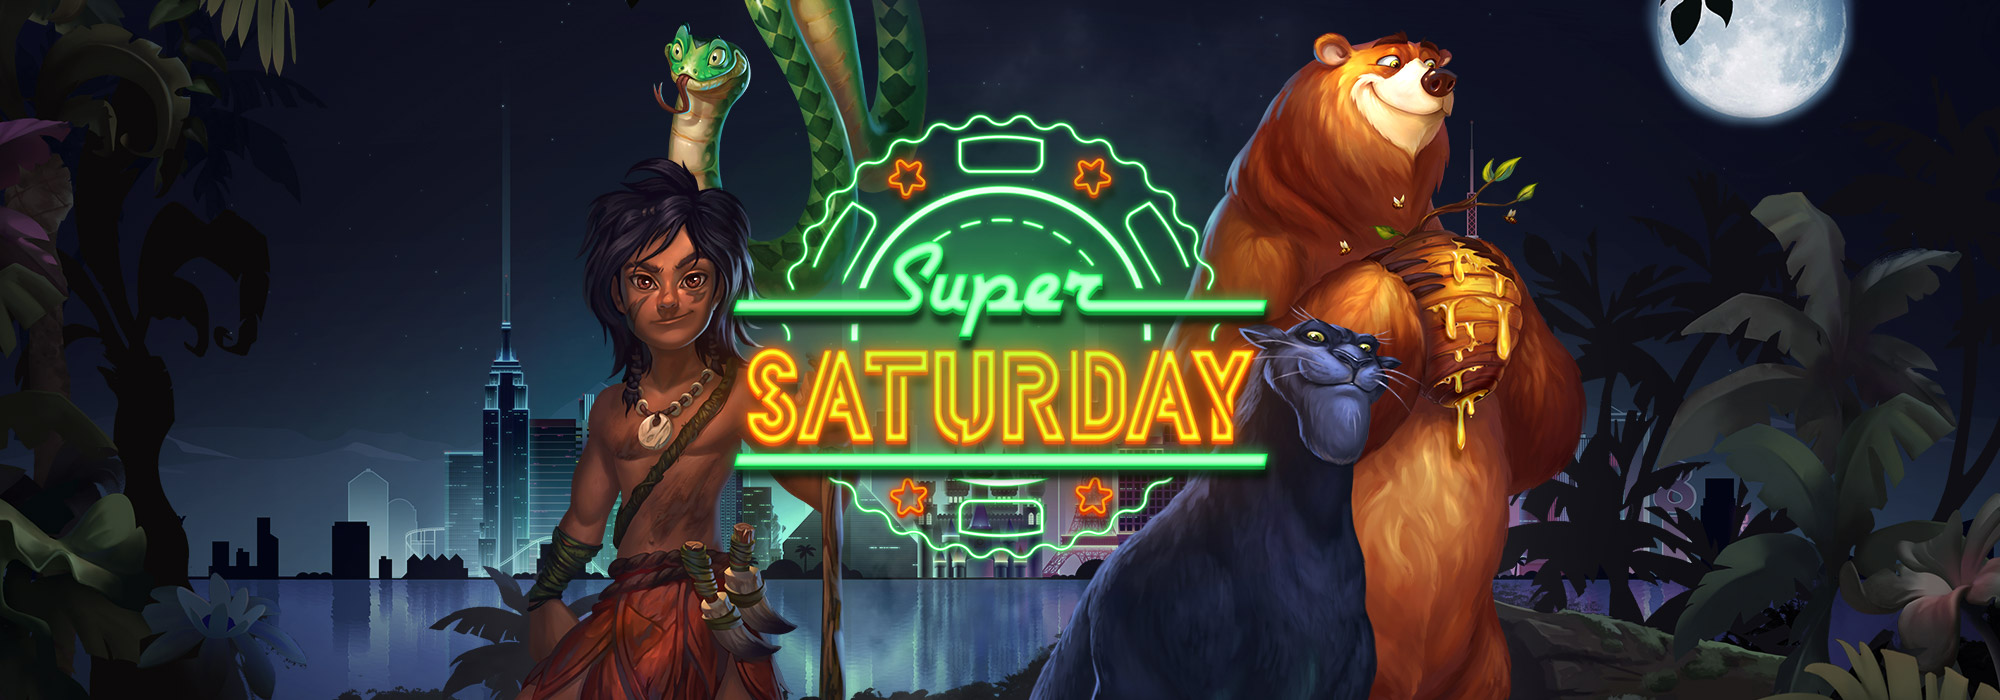 SuperSaturday PromoPage 2000x700